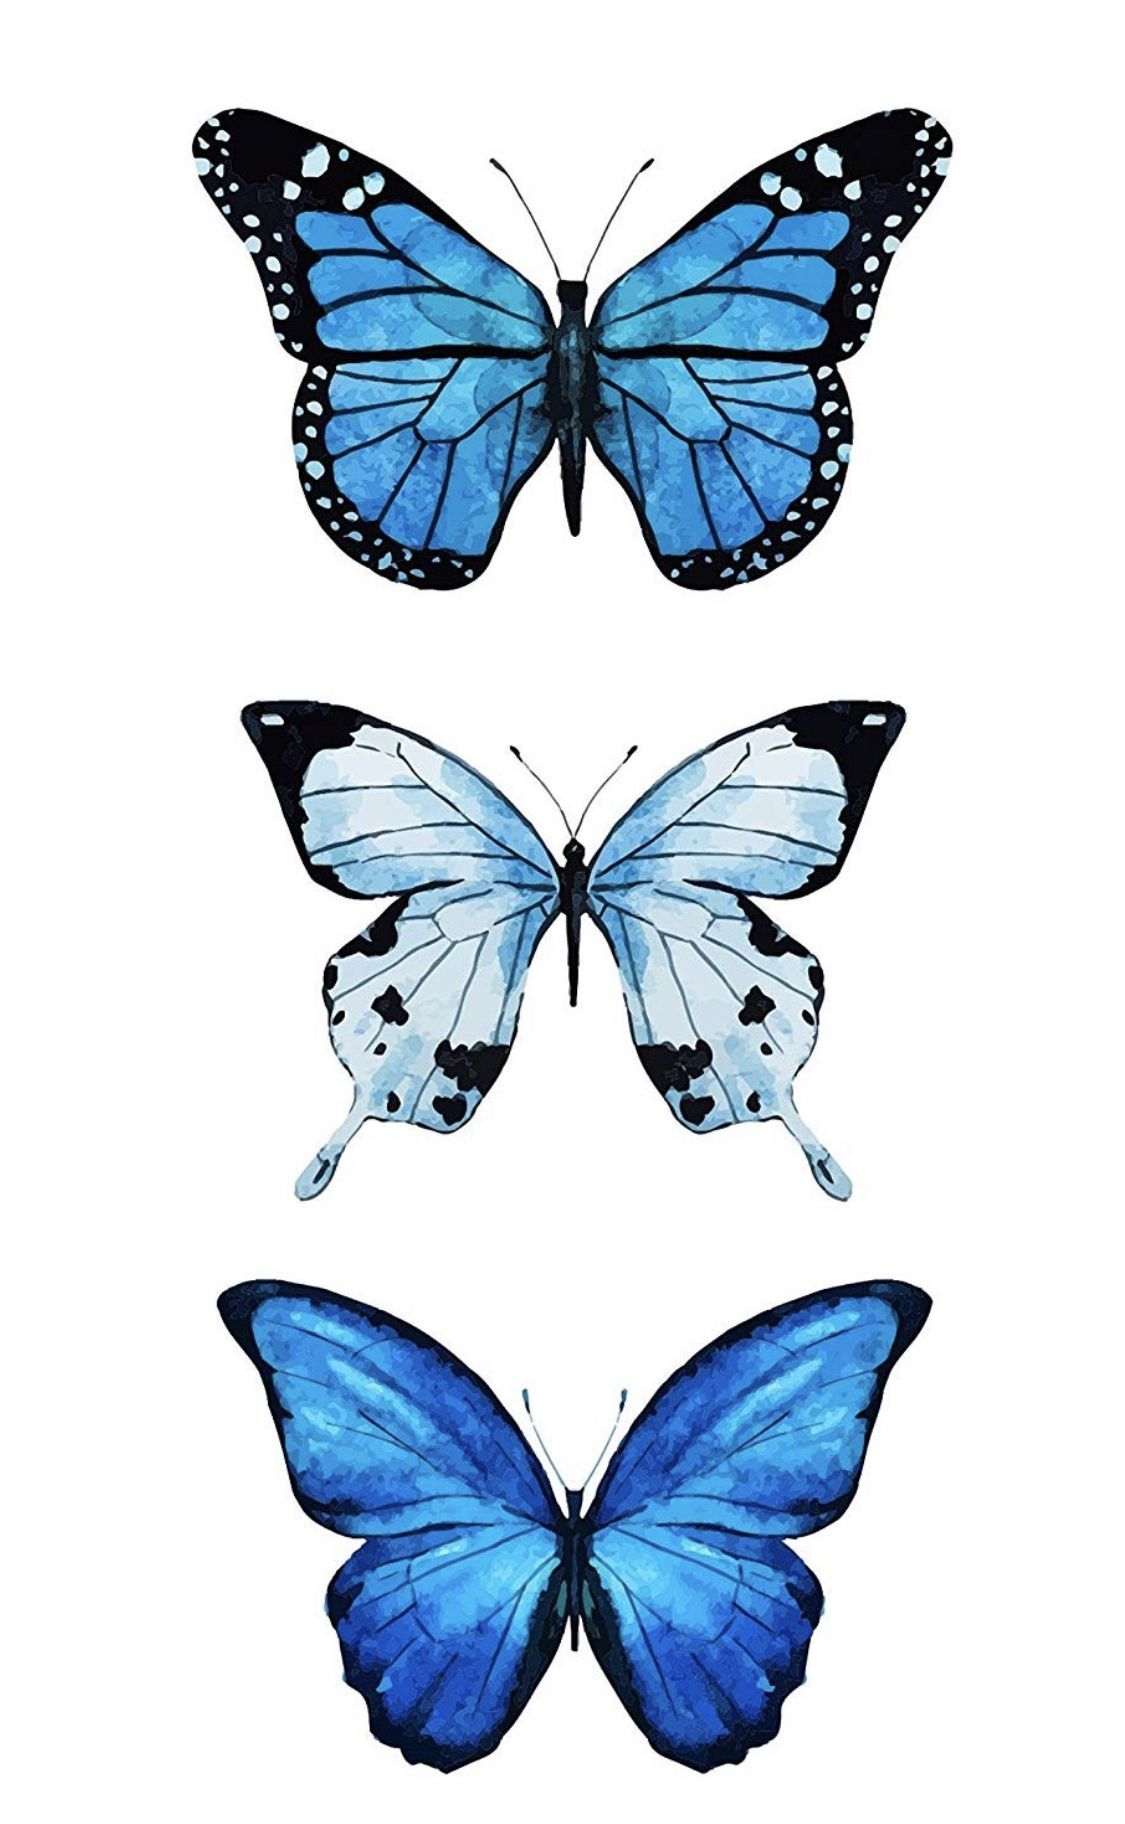 e16168b9c88667110c553d2325fa4aee » Butterfly Drawing Aesthetic